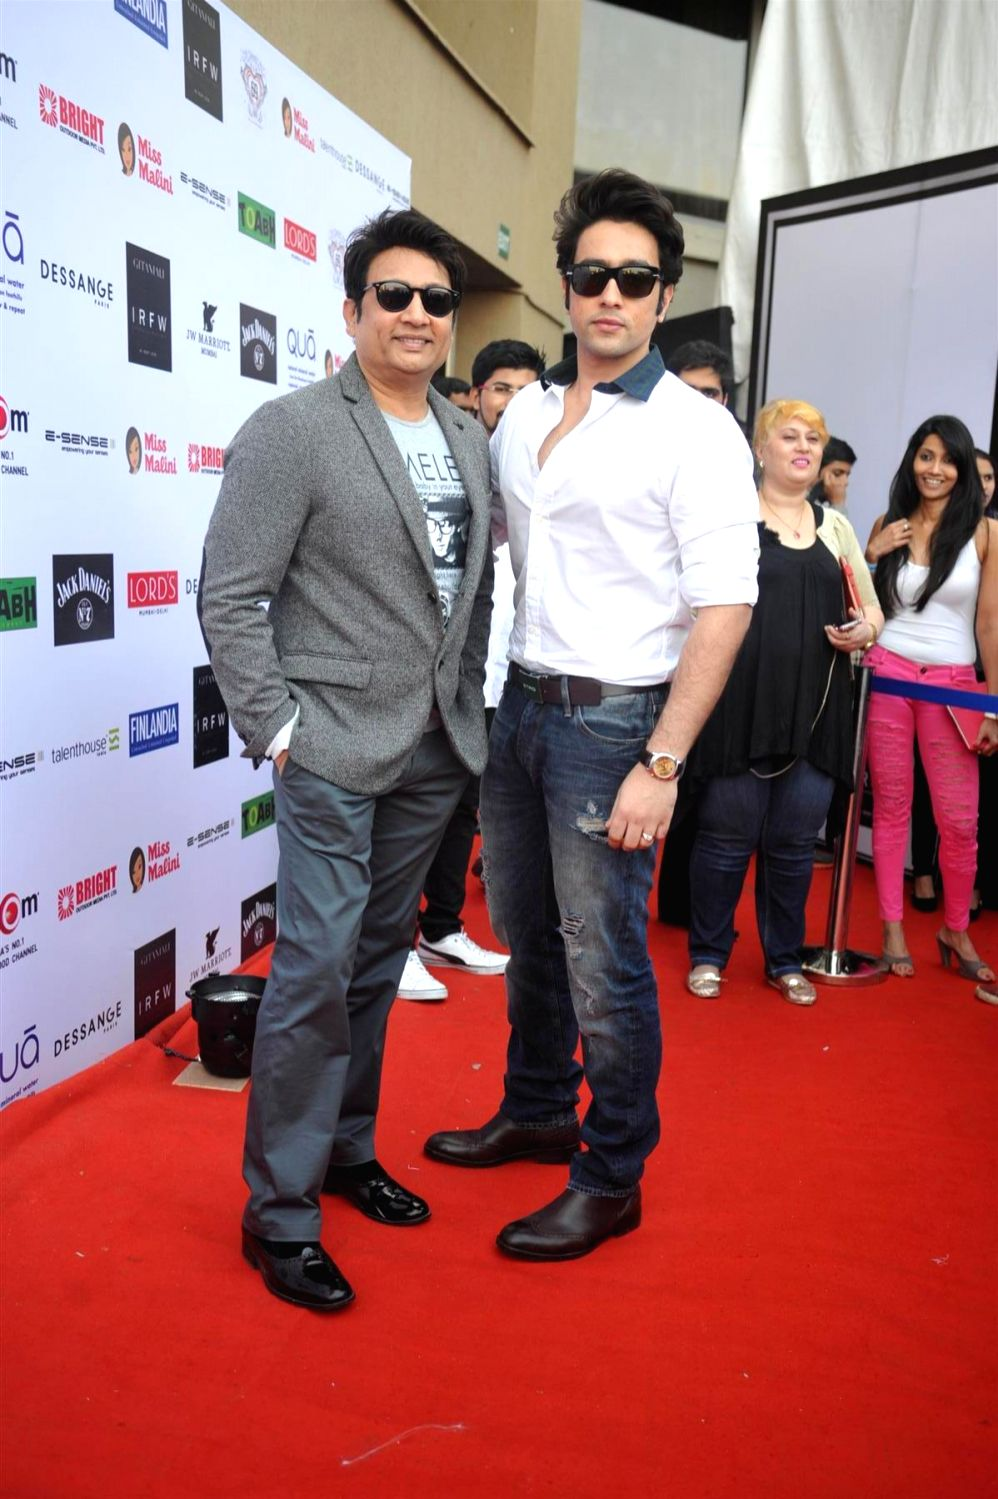 Actors Adhyayan Suman and Shekhar Suman at the 3rd Edition of India Resortwear Fashion Week (IRFW) 2013 in Mumbai on December 13, 2013. - Adhyayan Suman and Shekhar Suman